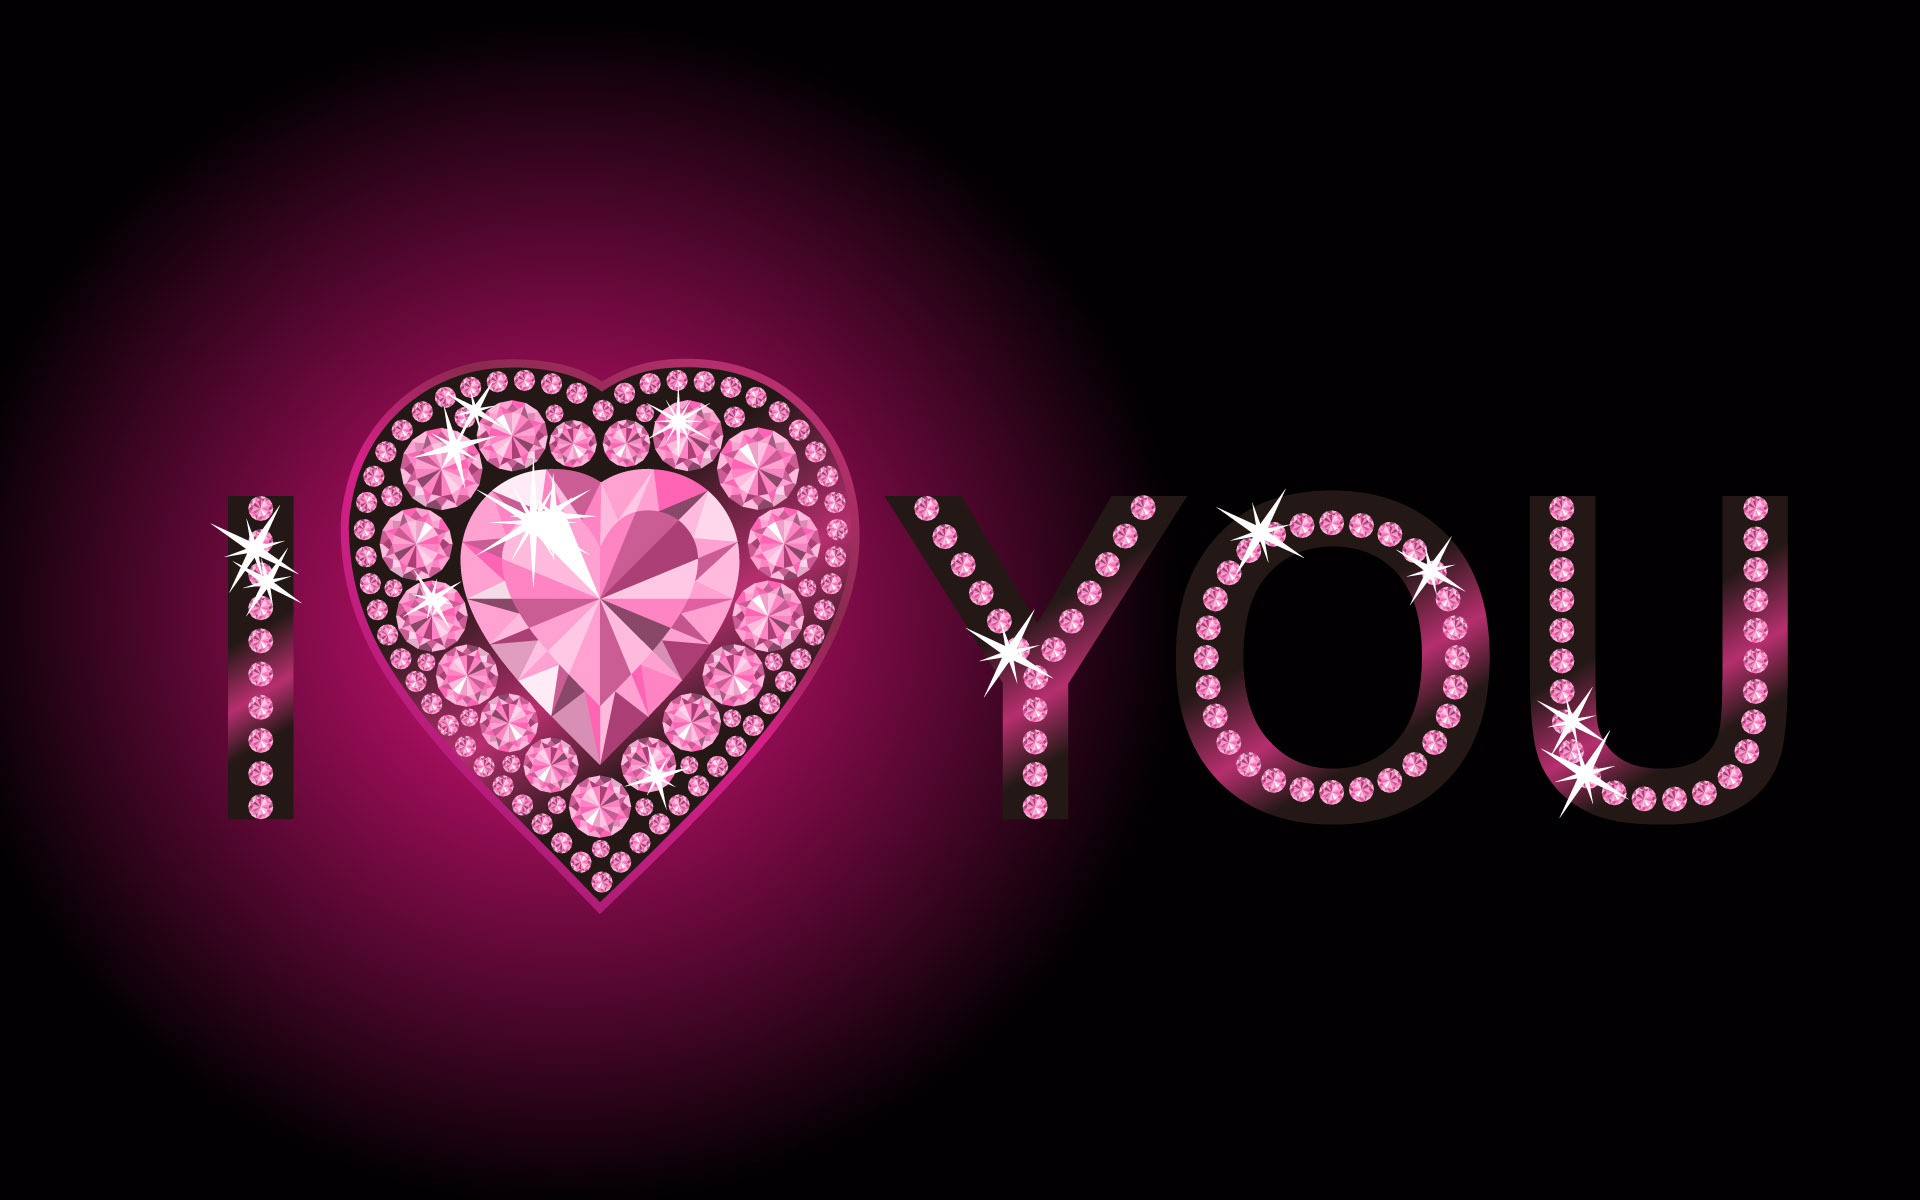 I Love You Desktop Wallpaper - Wallpaper, High Definition ...